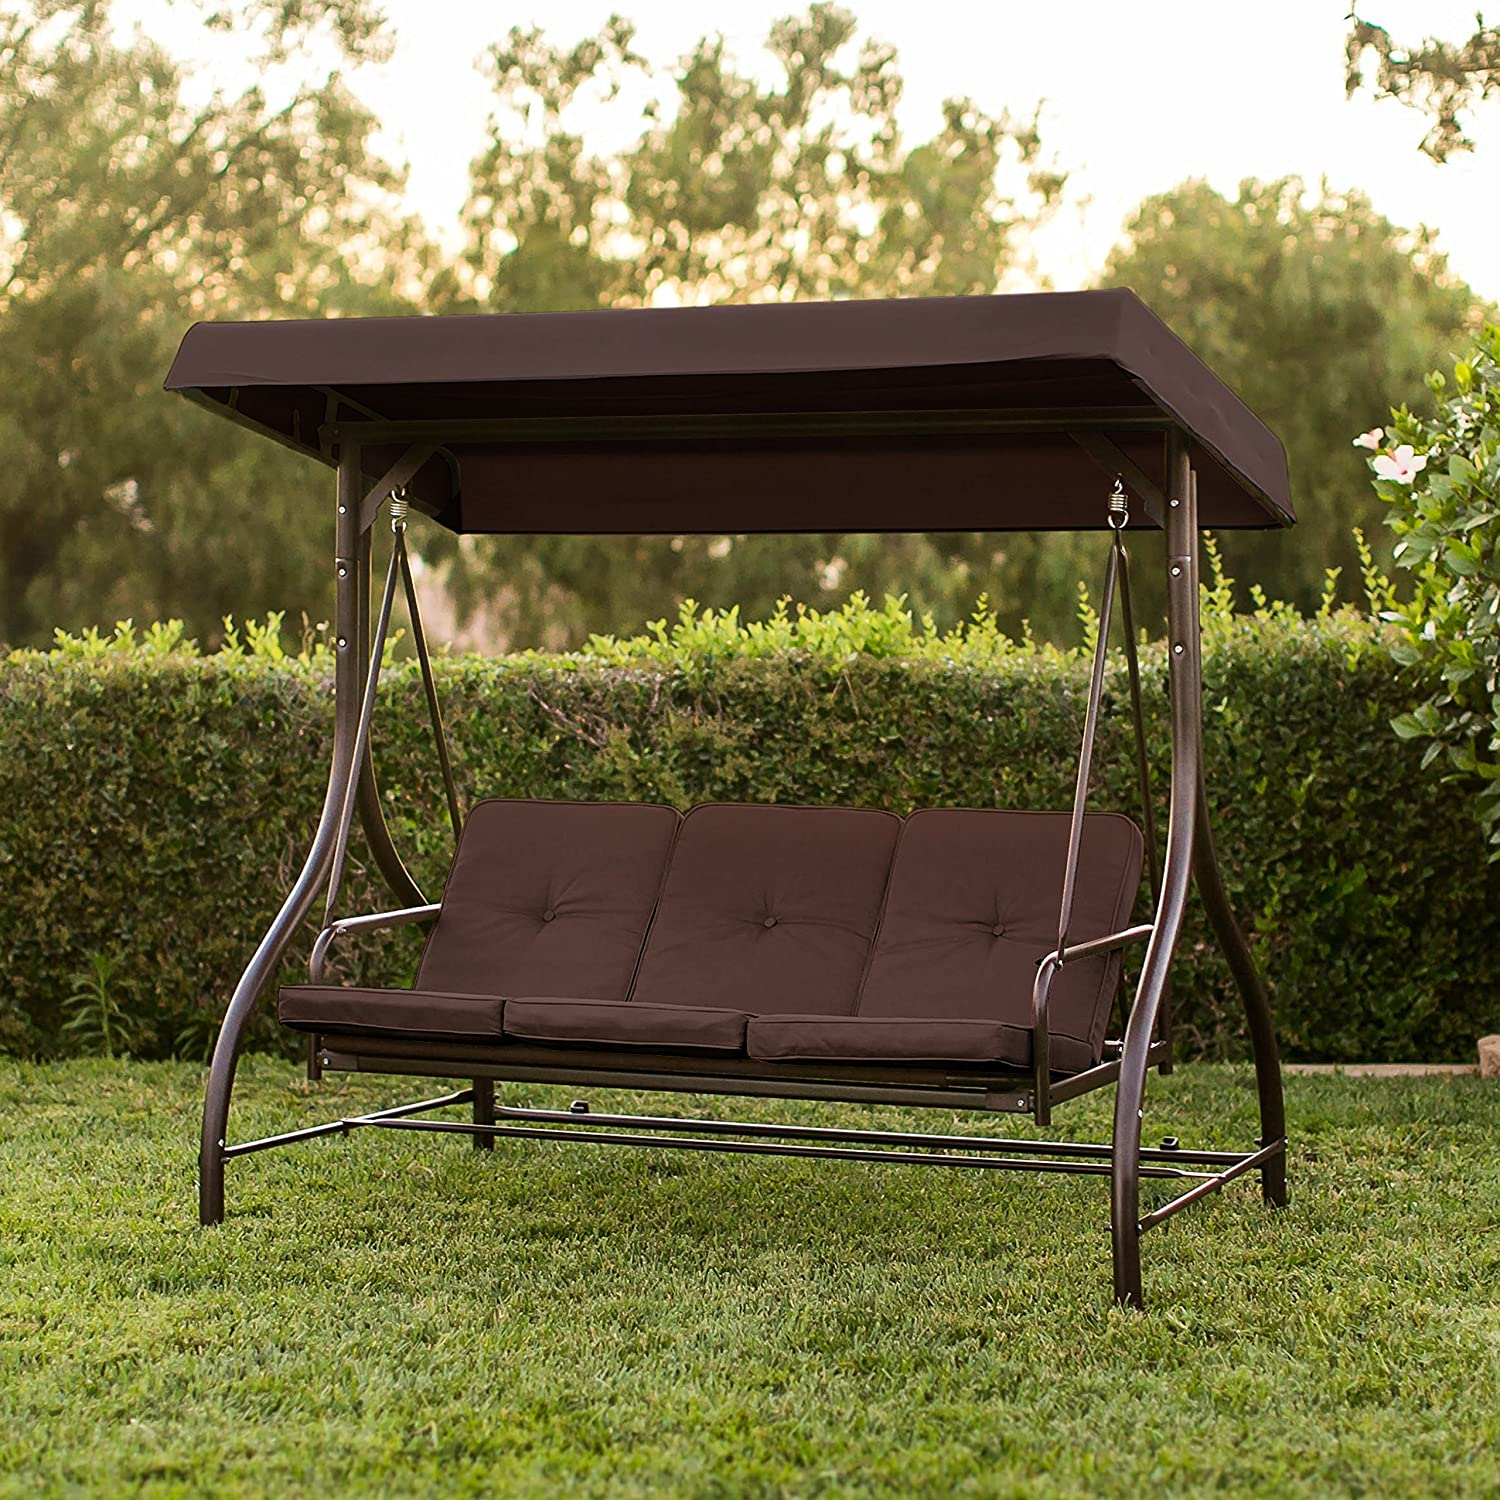 Amazon.com : Best Convertible Patio Swing Chair For 3 Person With ...